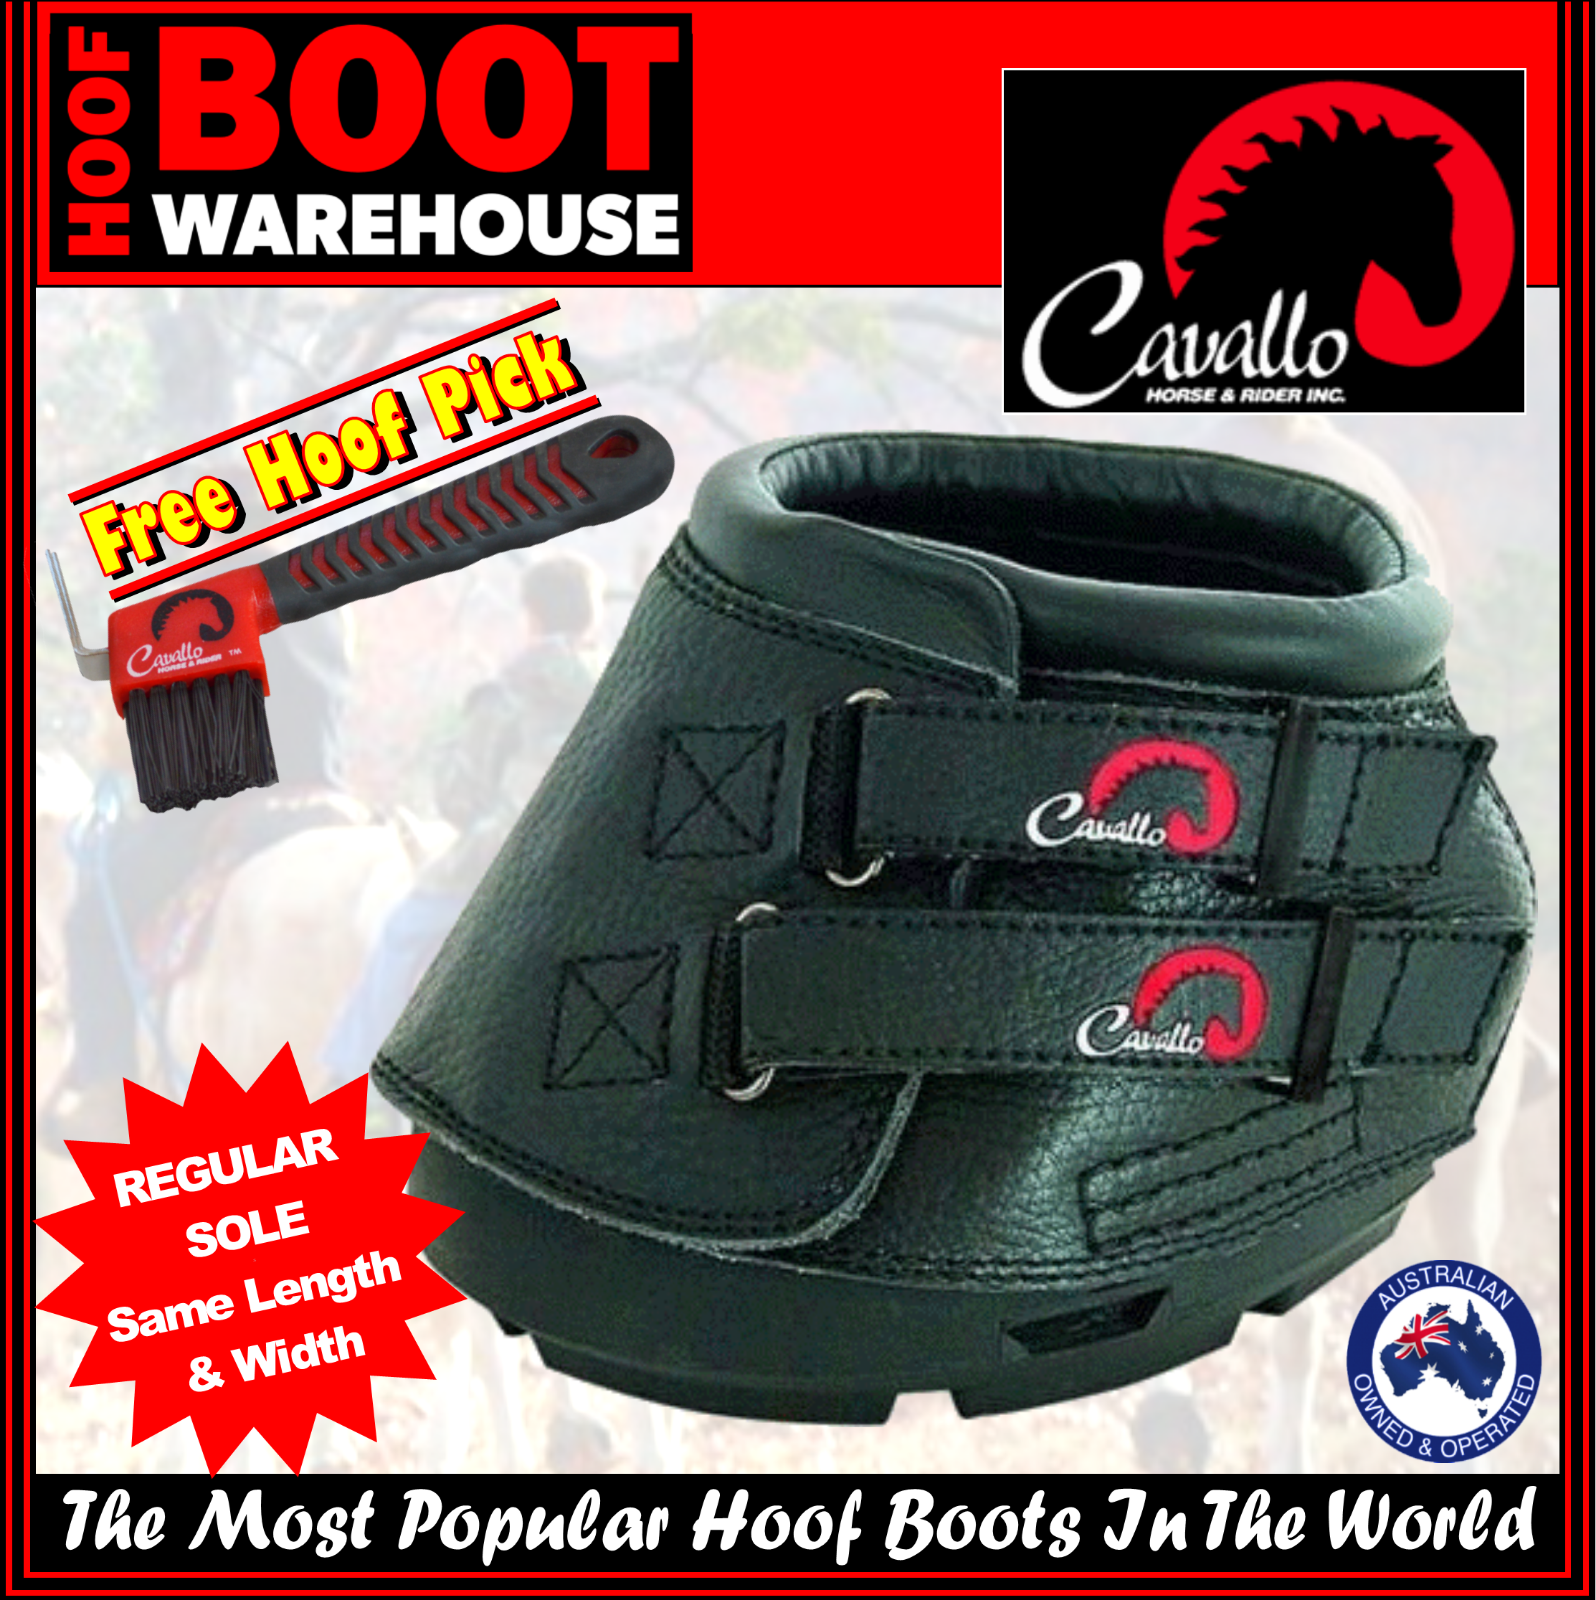 Cavallo 'SIMPLE' Hoof Stiefel (Pair)  -  Protection. Horse. Equine. Protection.  REGULAR SOLE e62262